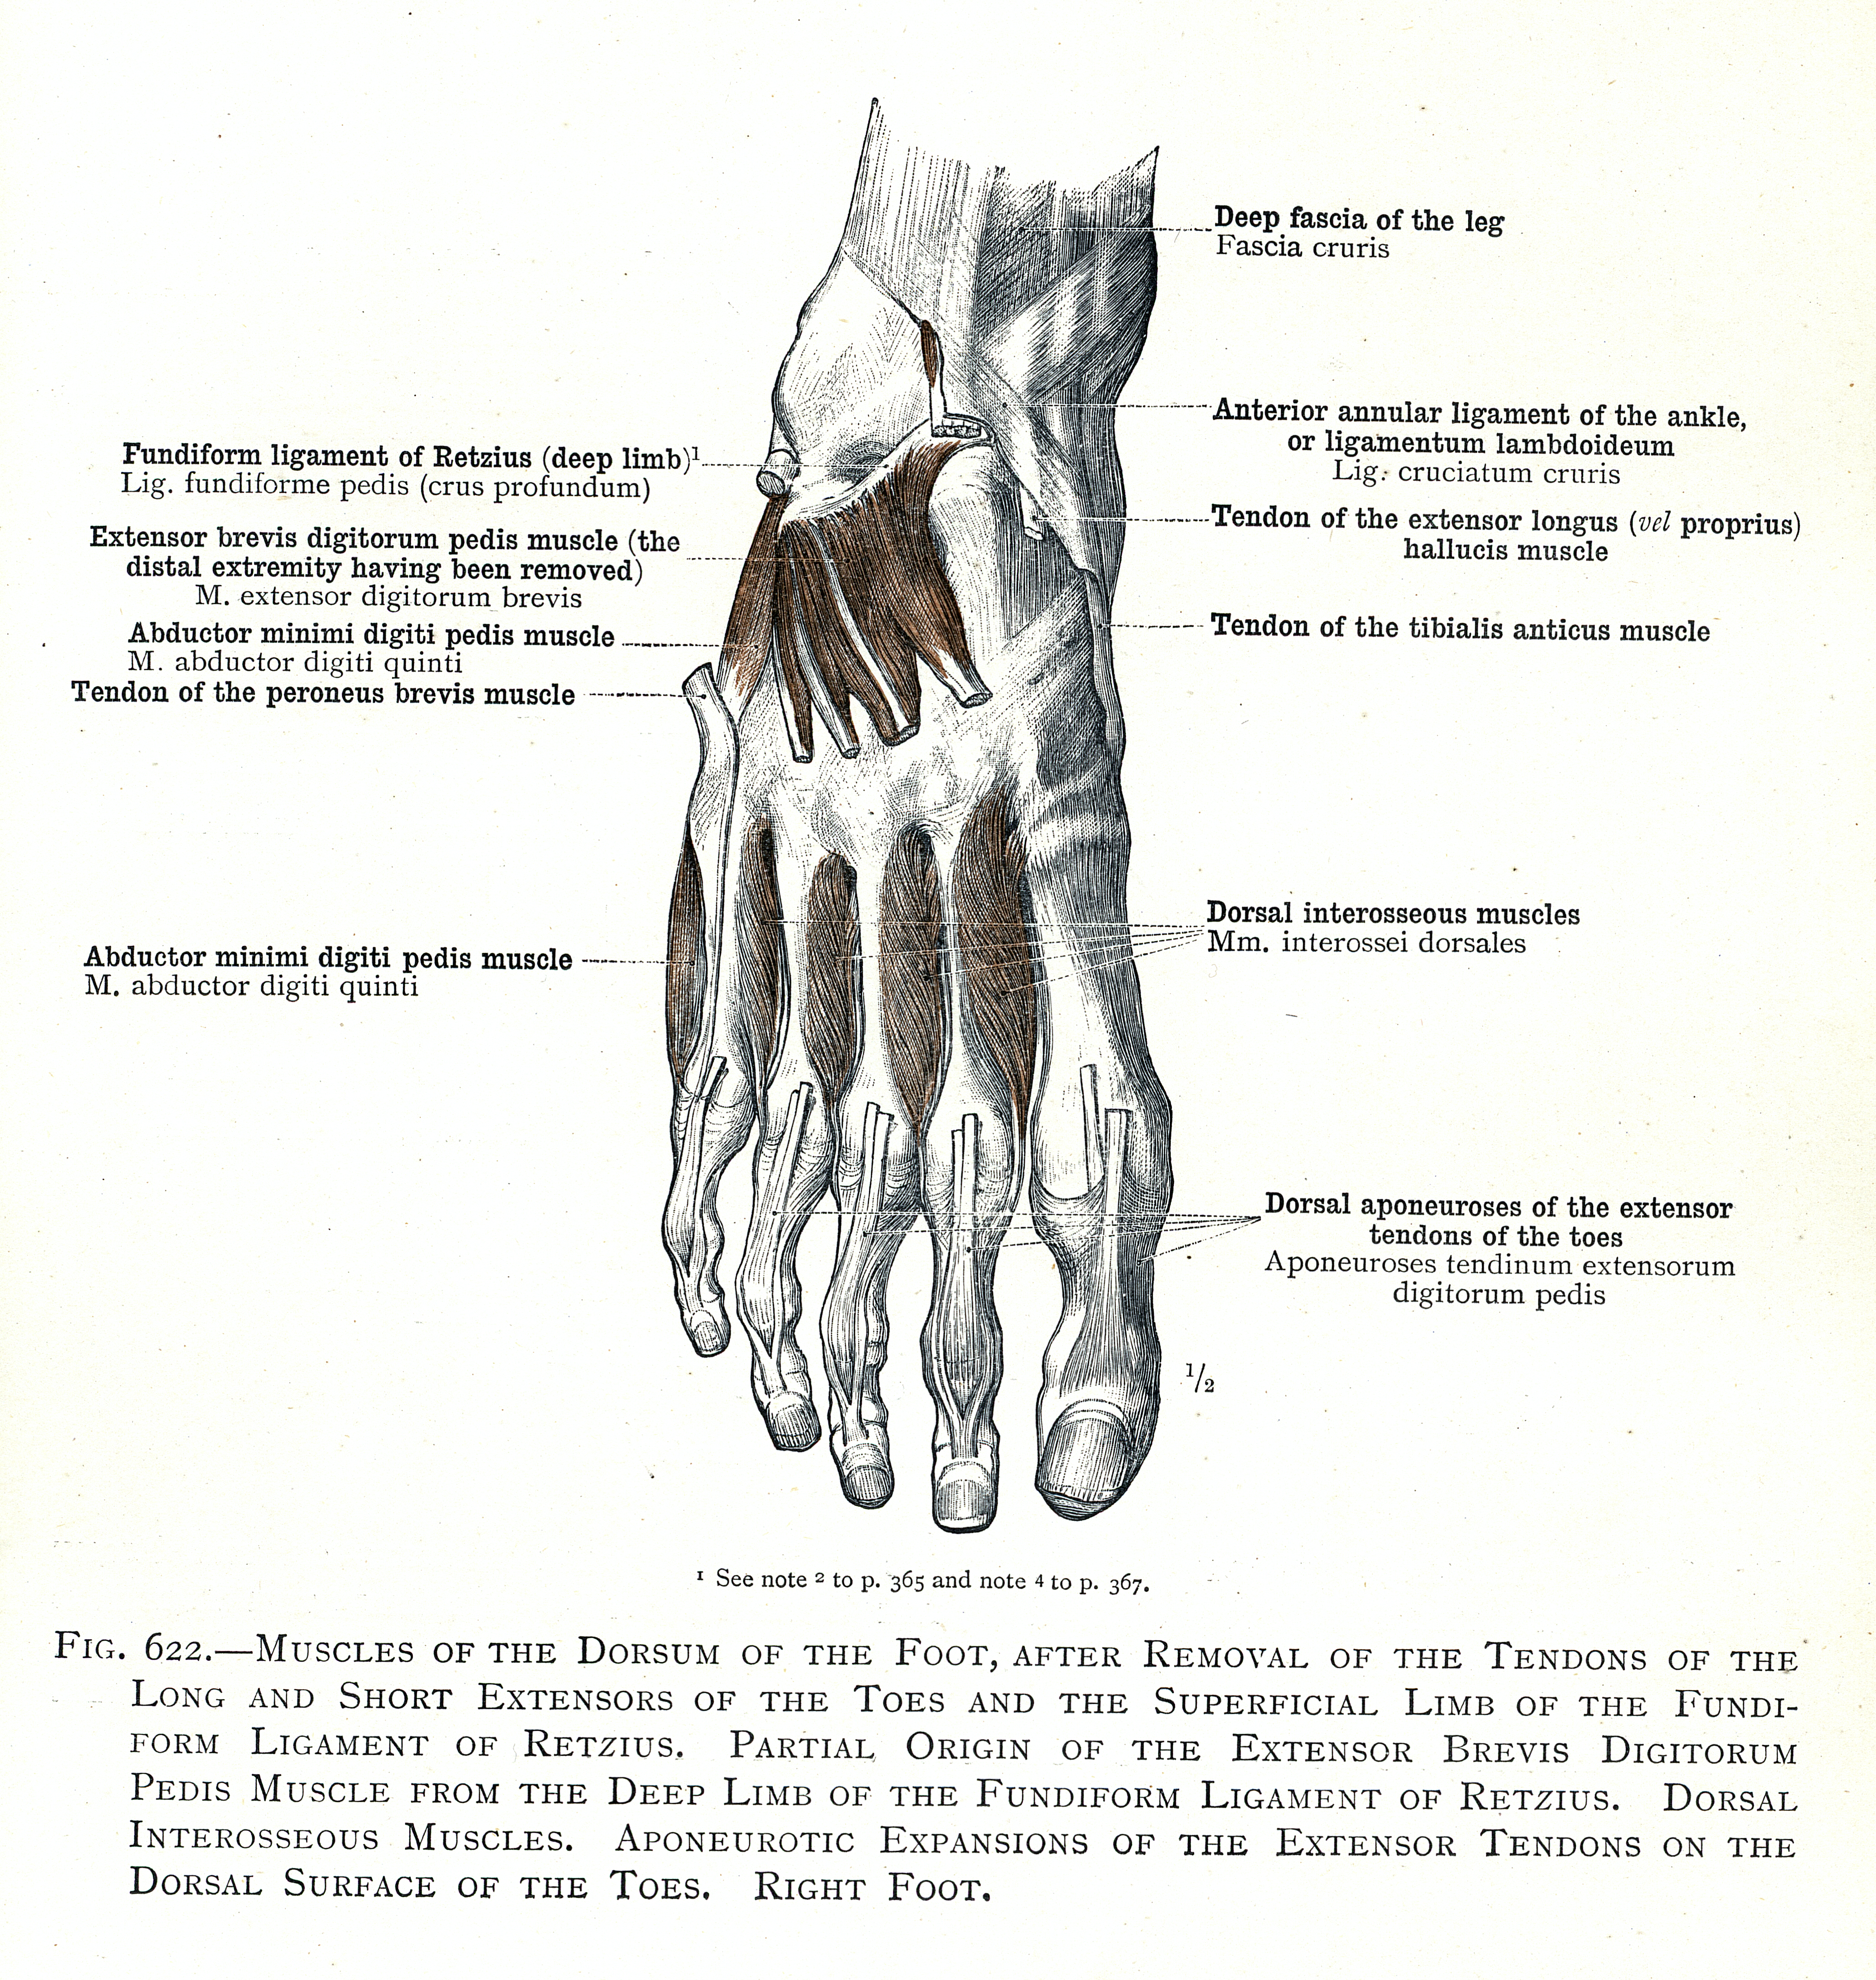 622. Muscles of the dorsum of the foot. Partial origin of the ...